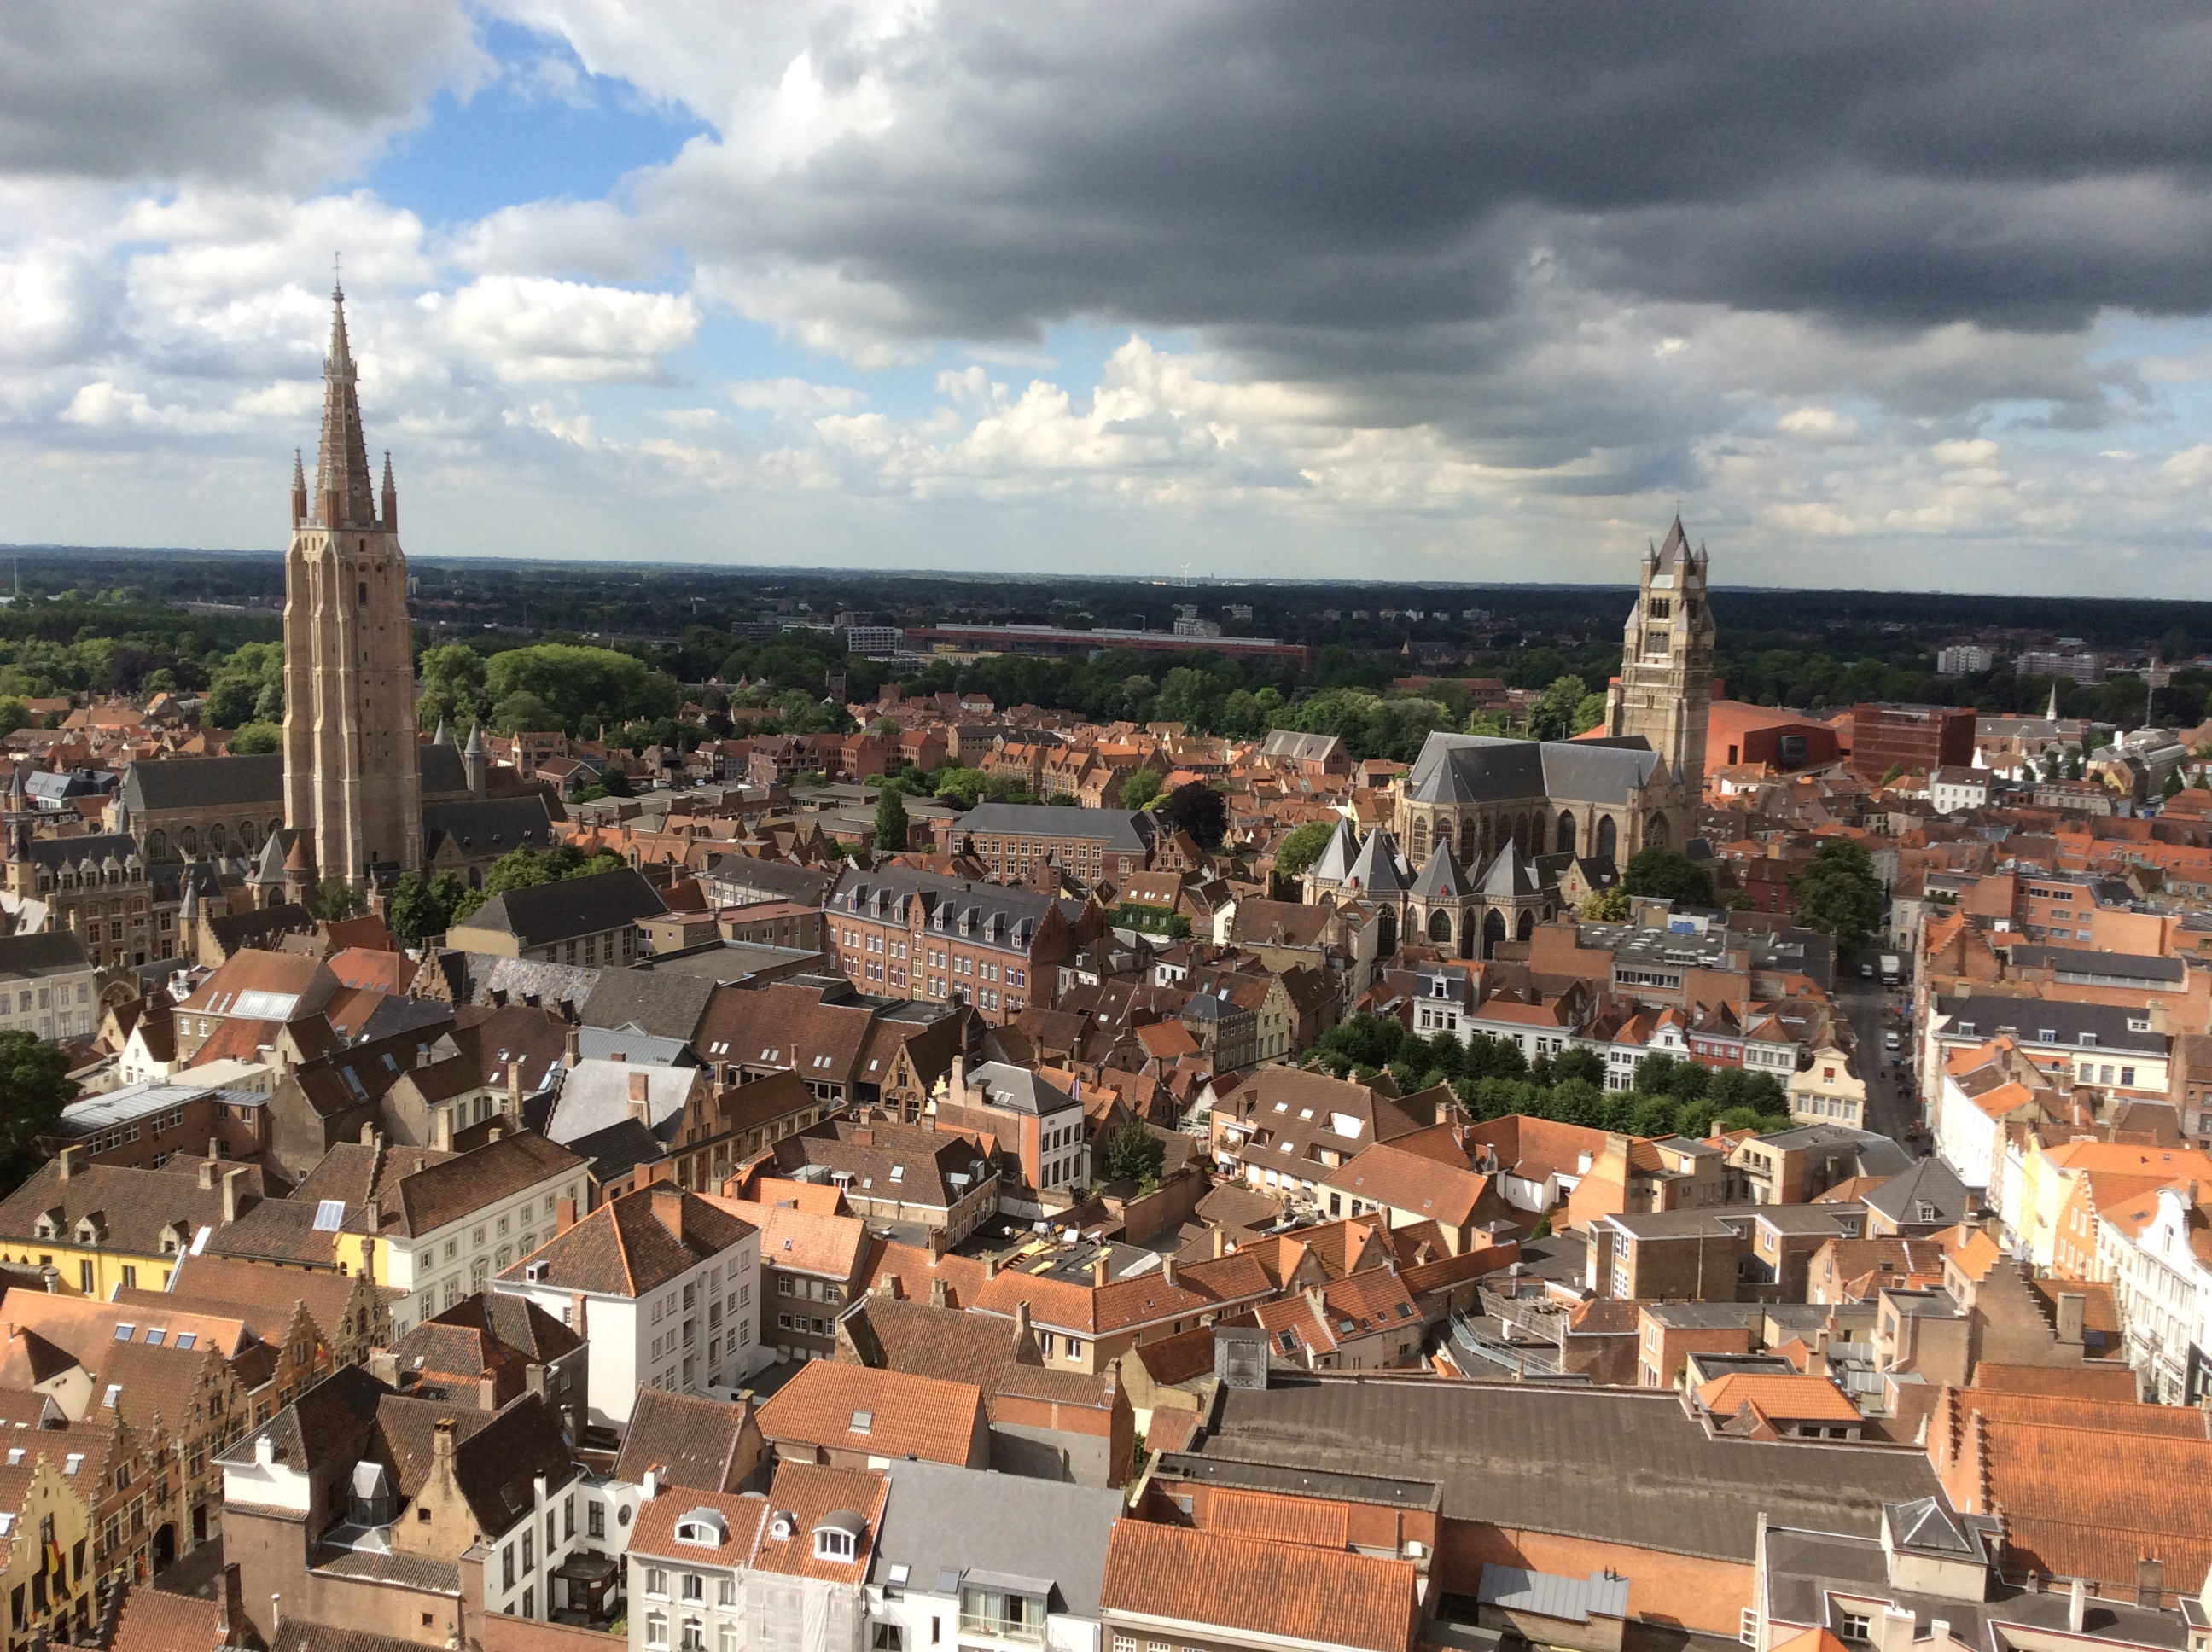 A Mostly Pictures Trip Report: Part 1 Bruges